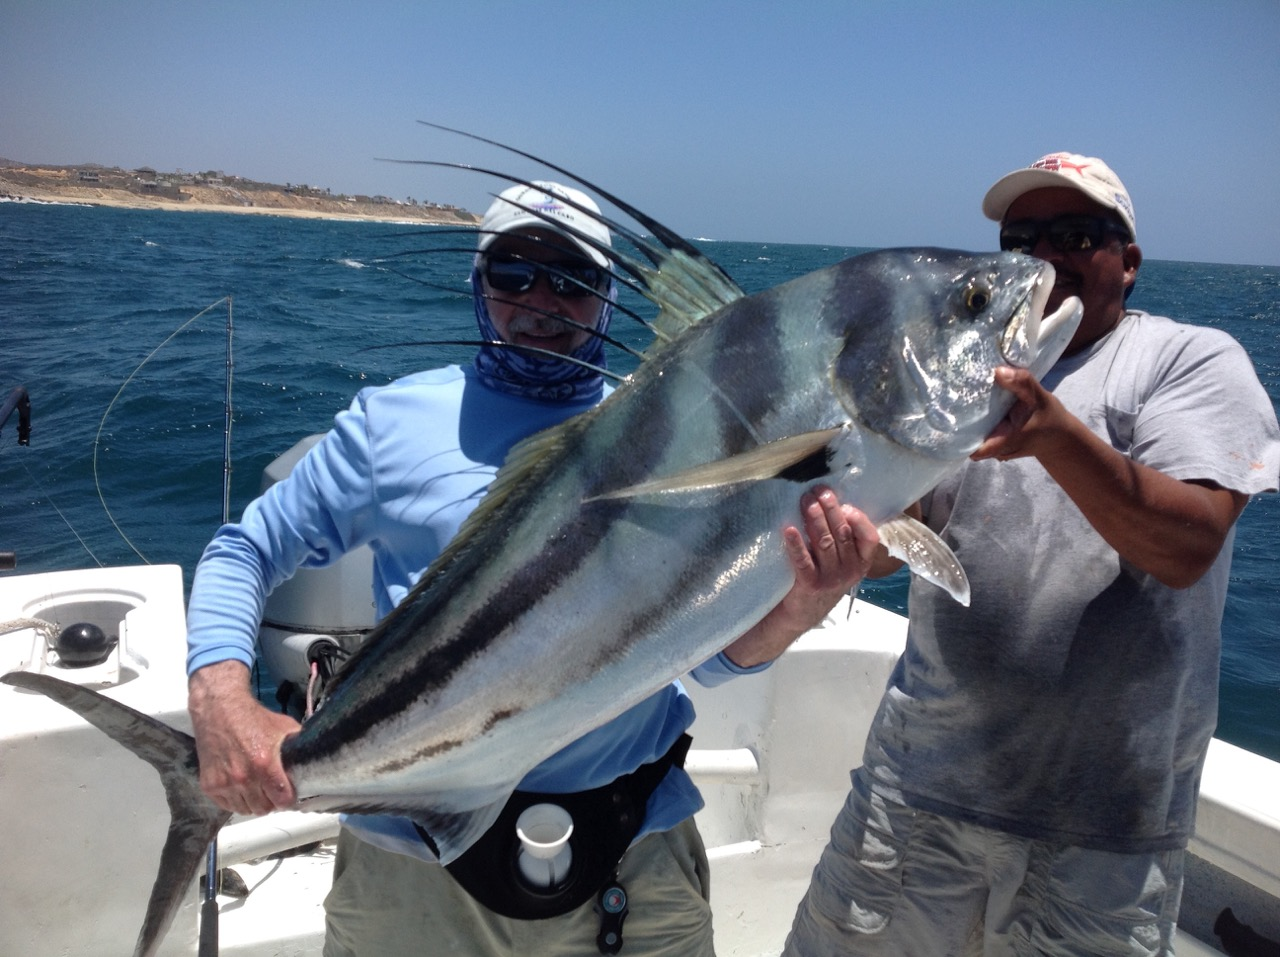 Fishing pictures hooked on fishing charters stratford for Get hooked fishing charters